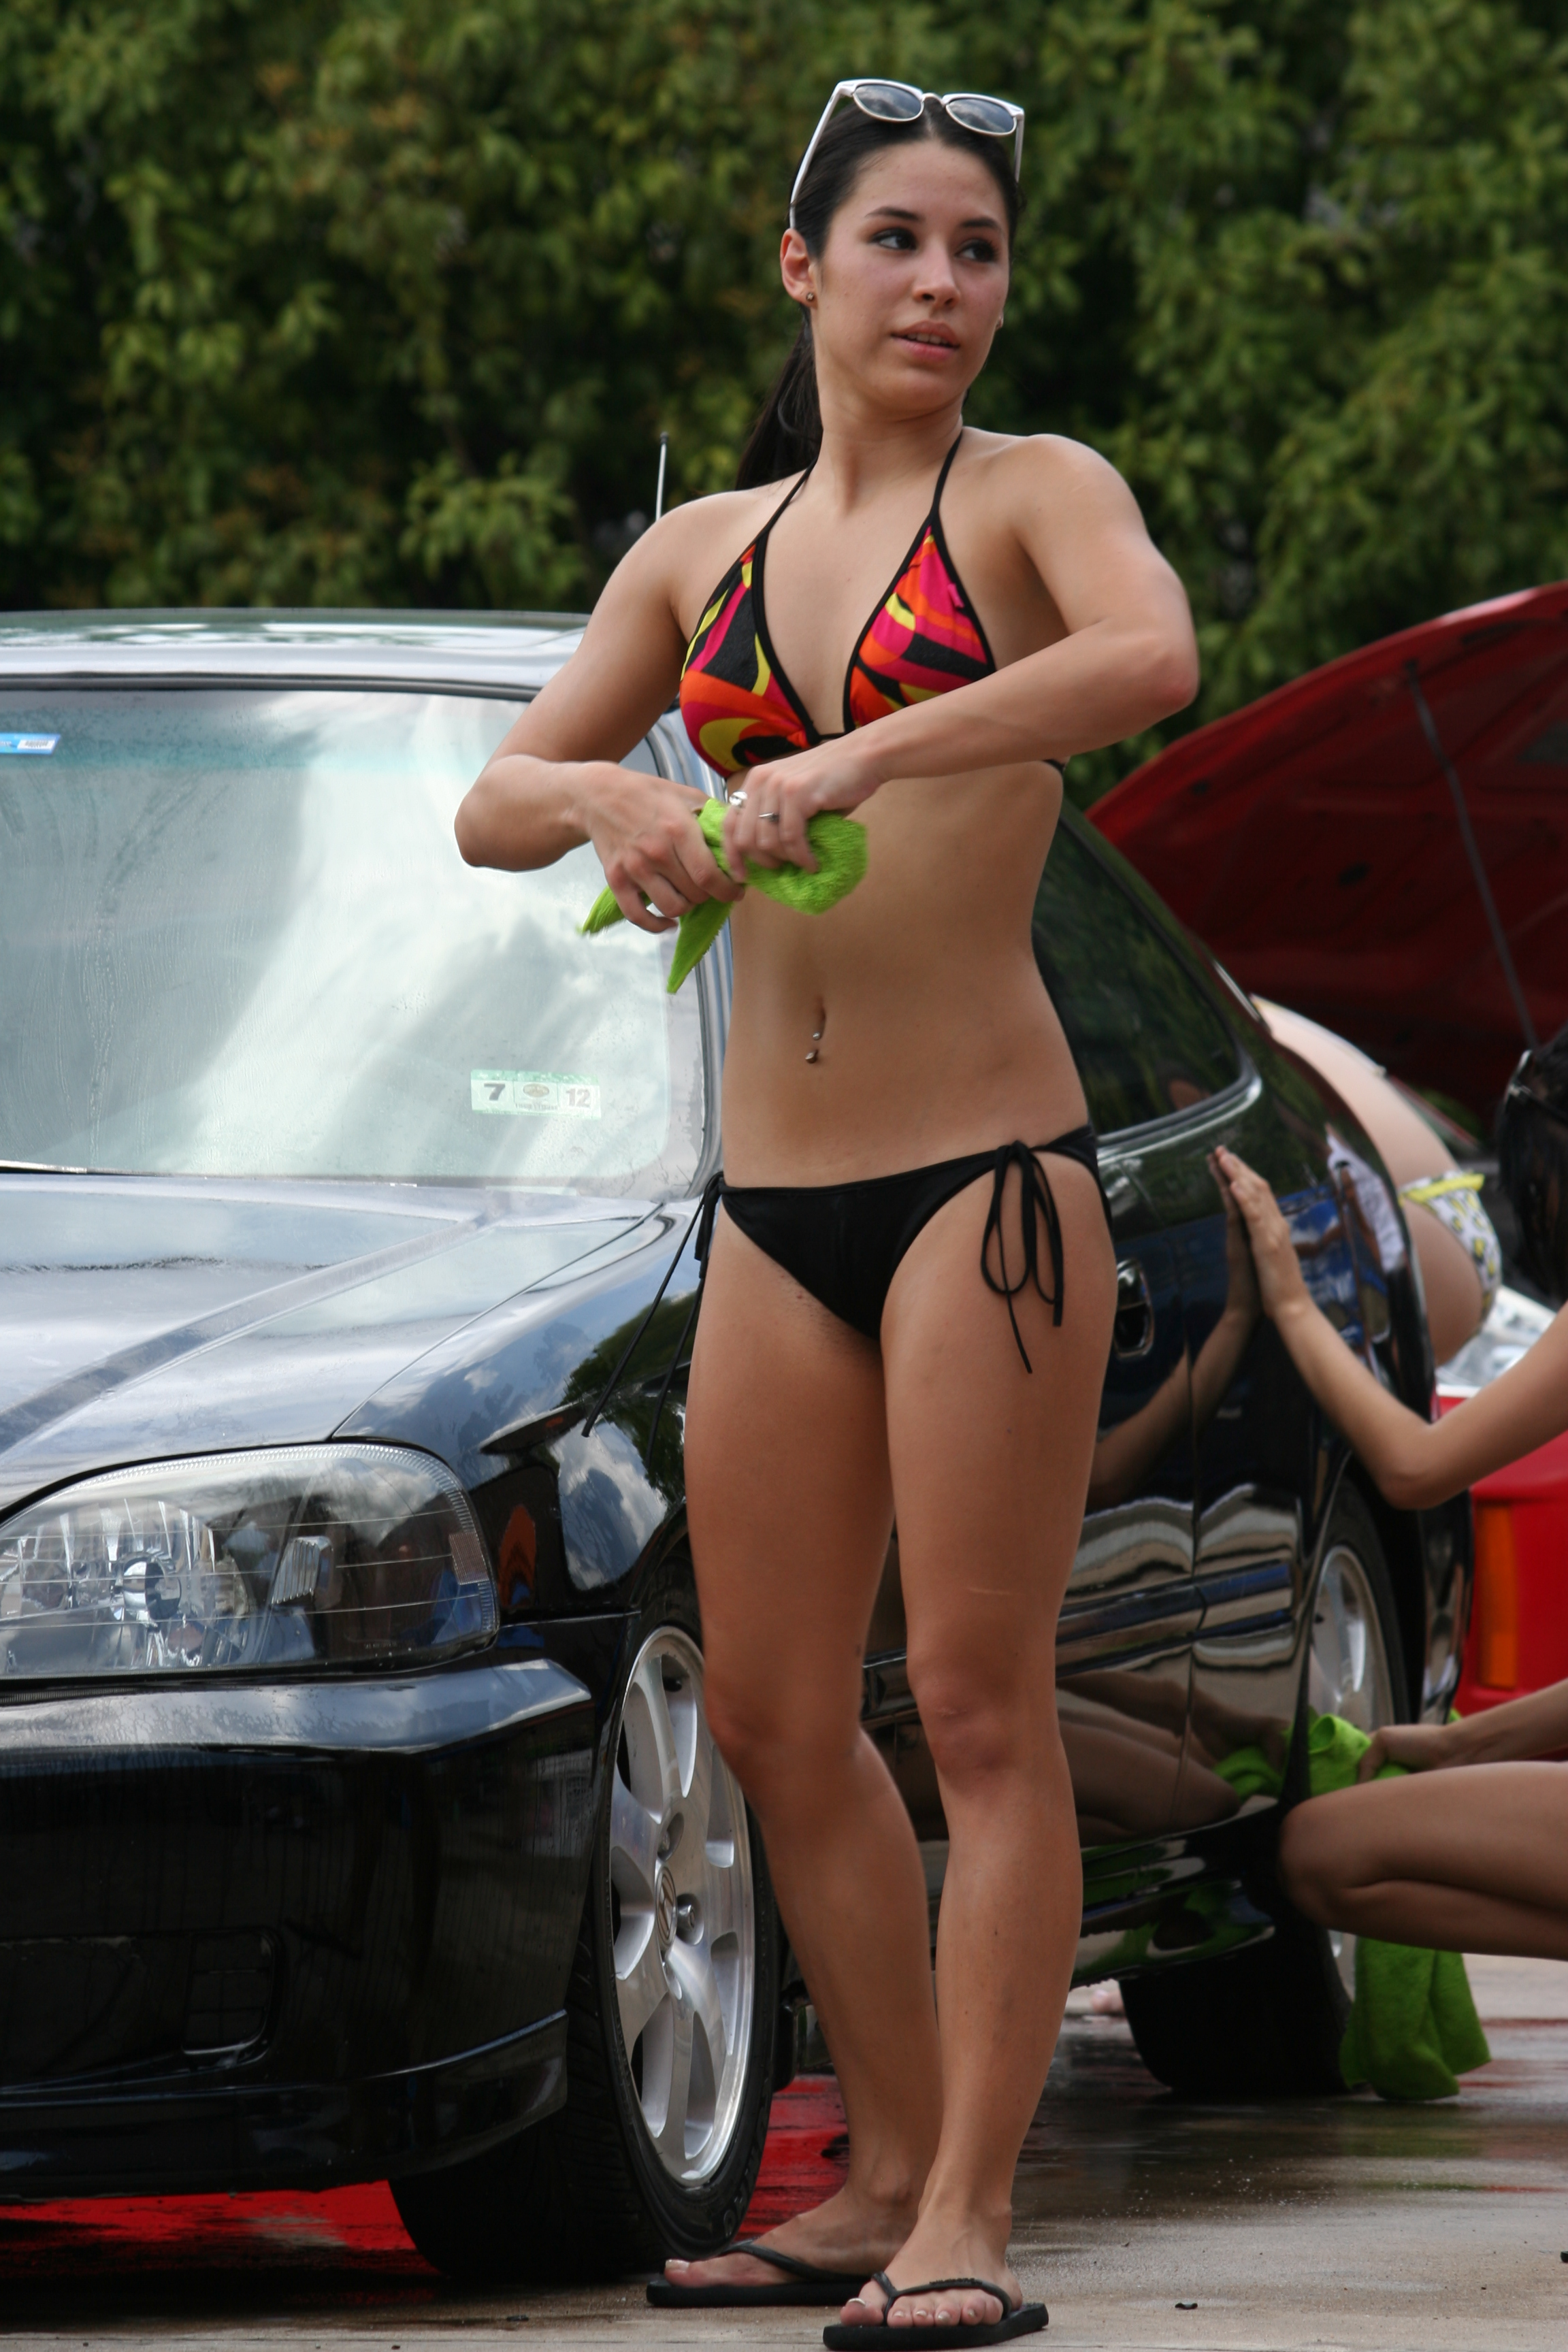 High School Bikini Car Wash http://automodia.com/tag/car-wash/